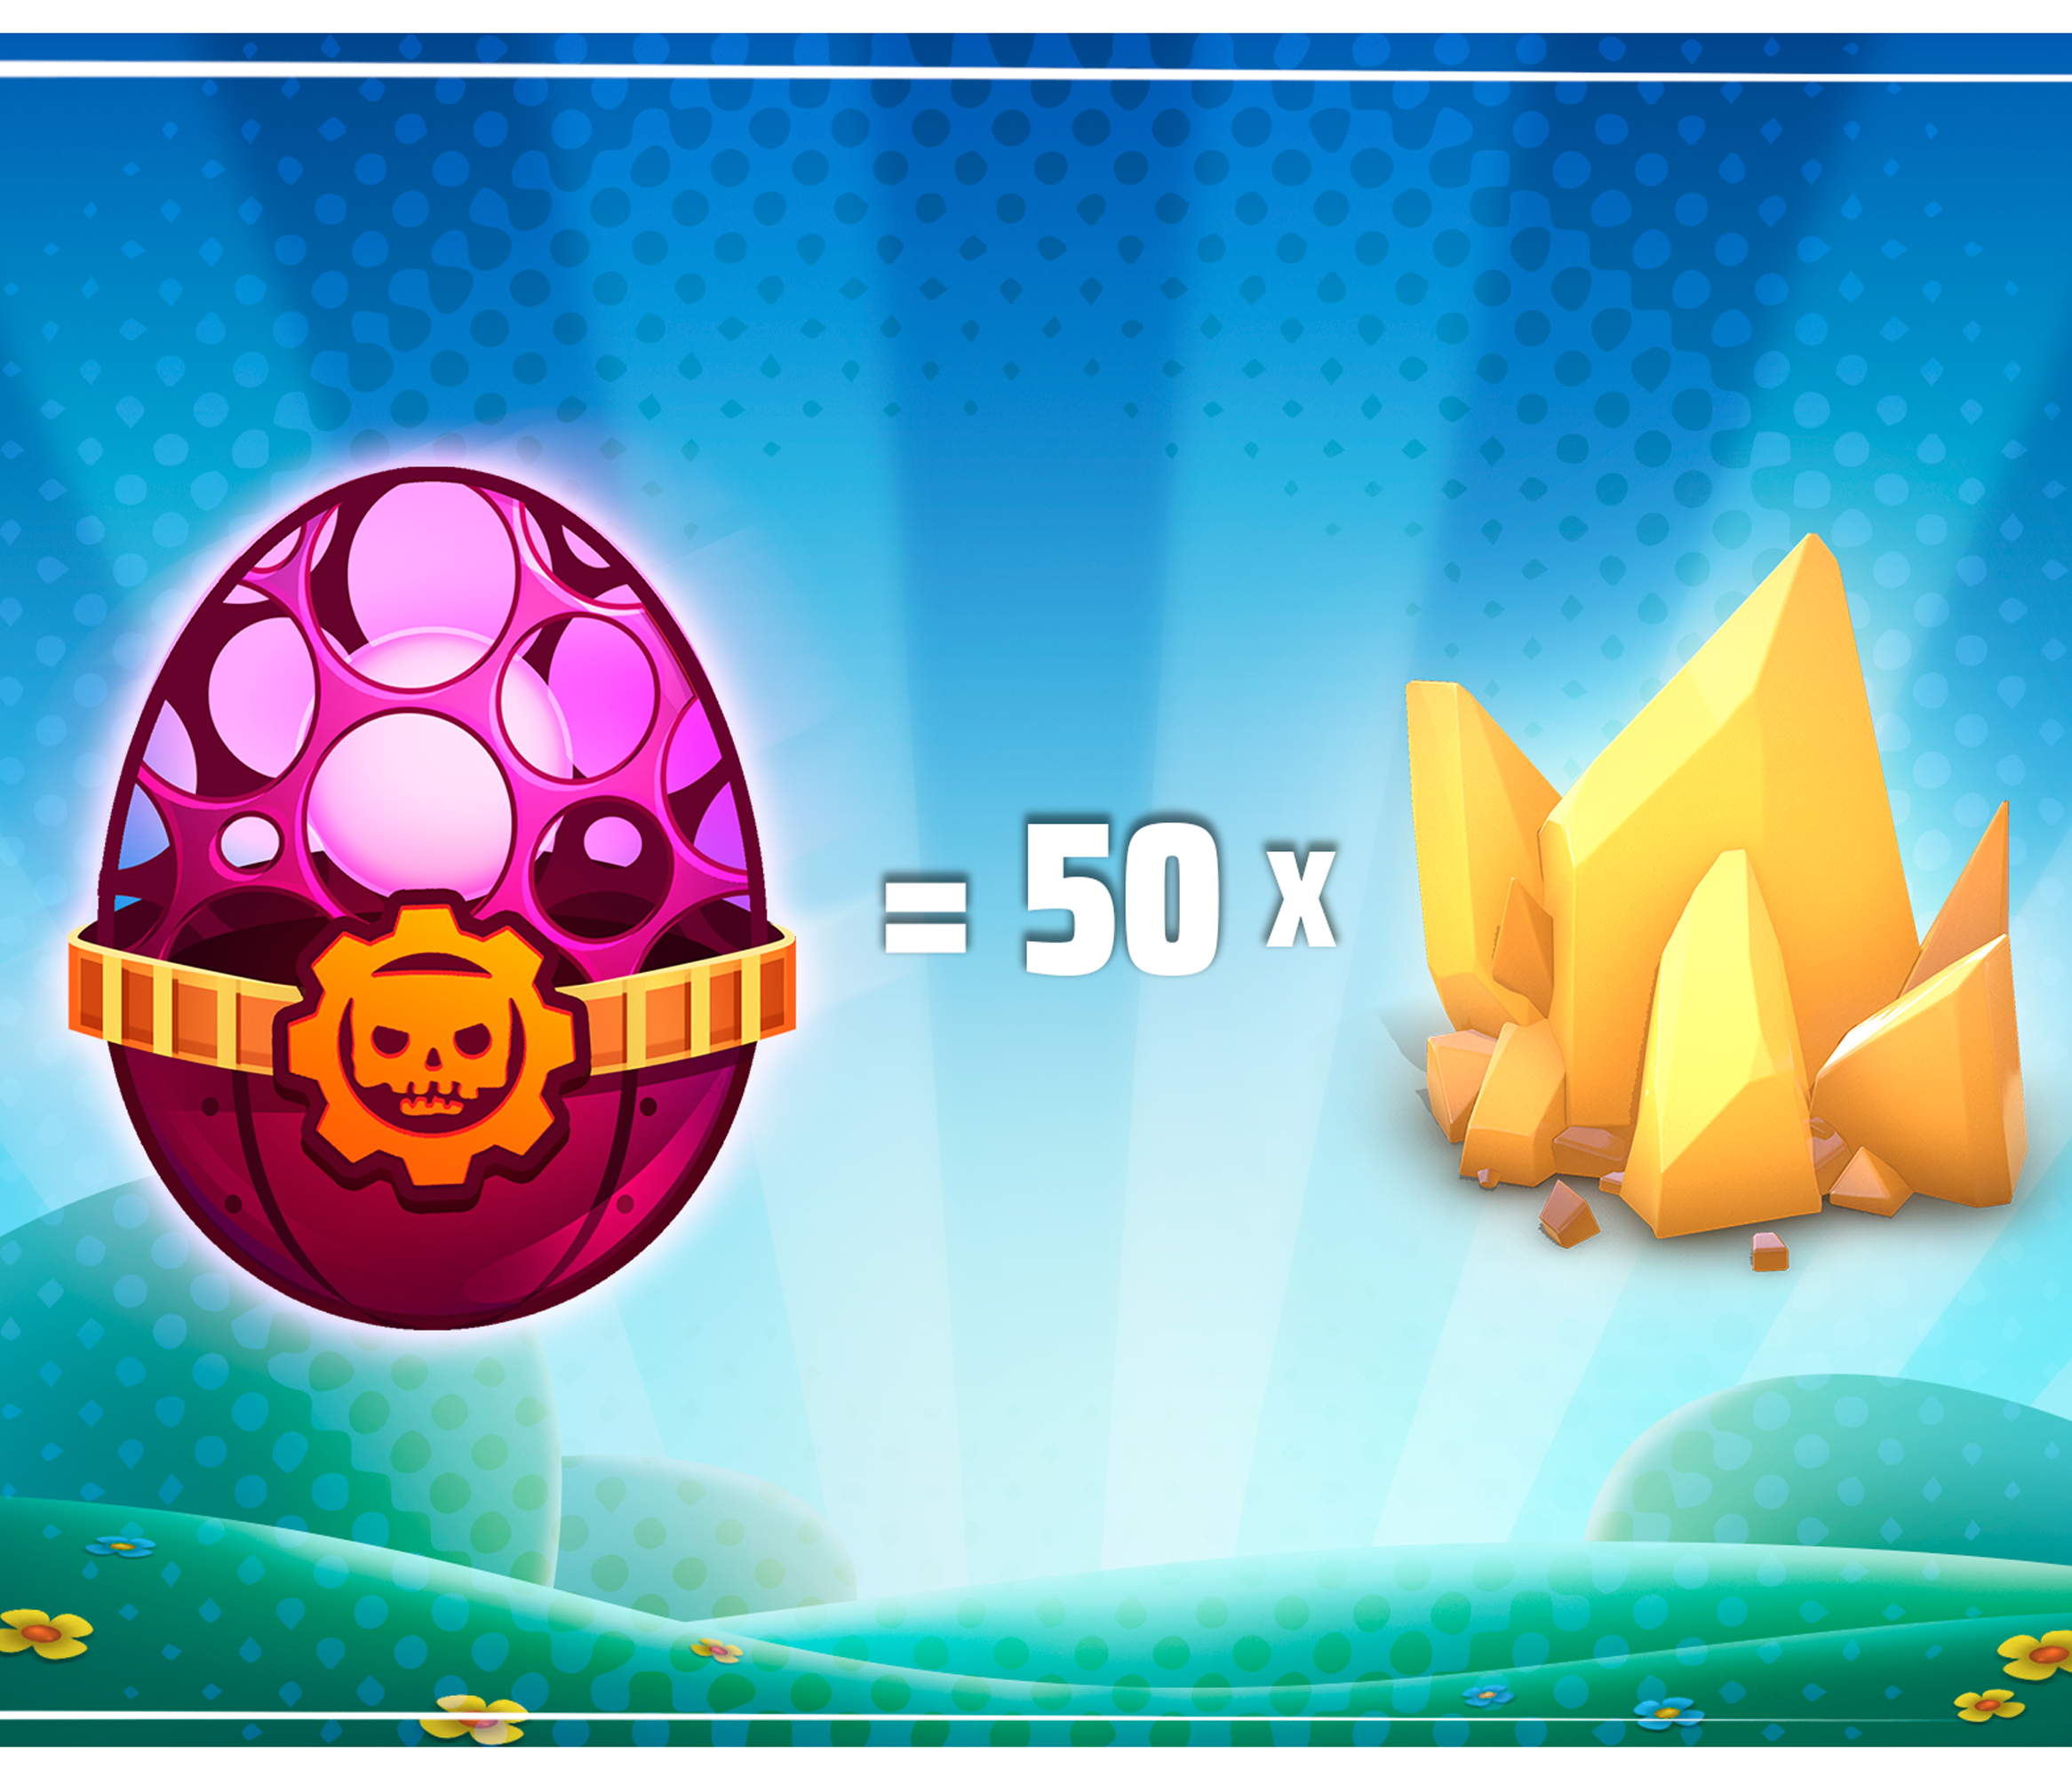 Legendary Easter Egg from Gears POP with 50 Crystals next to it